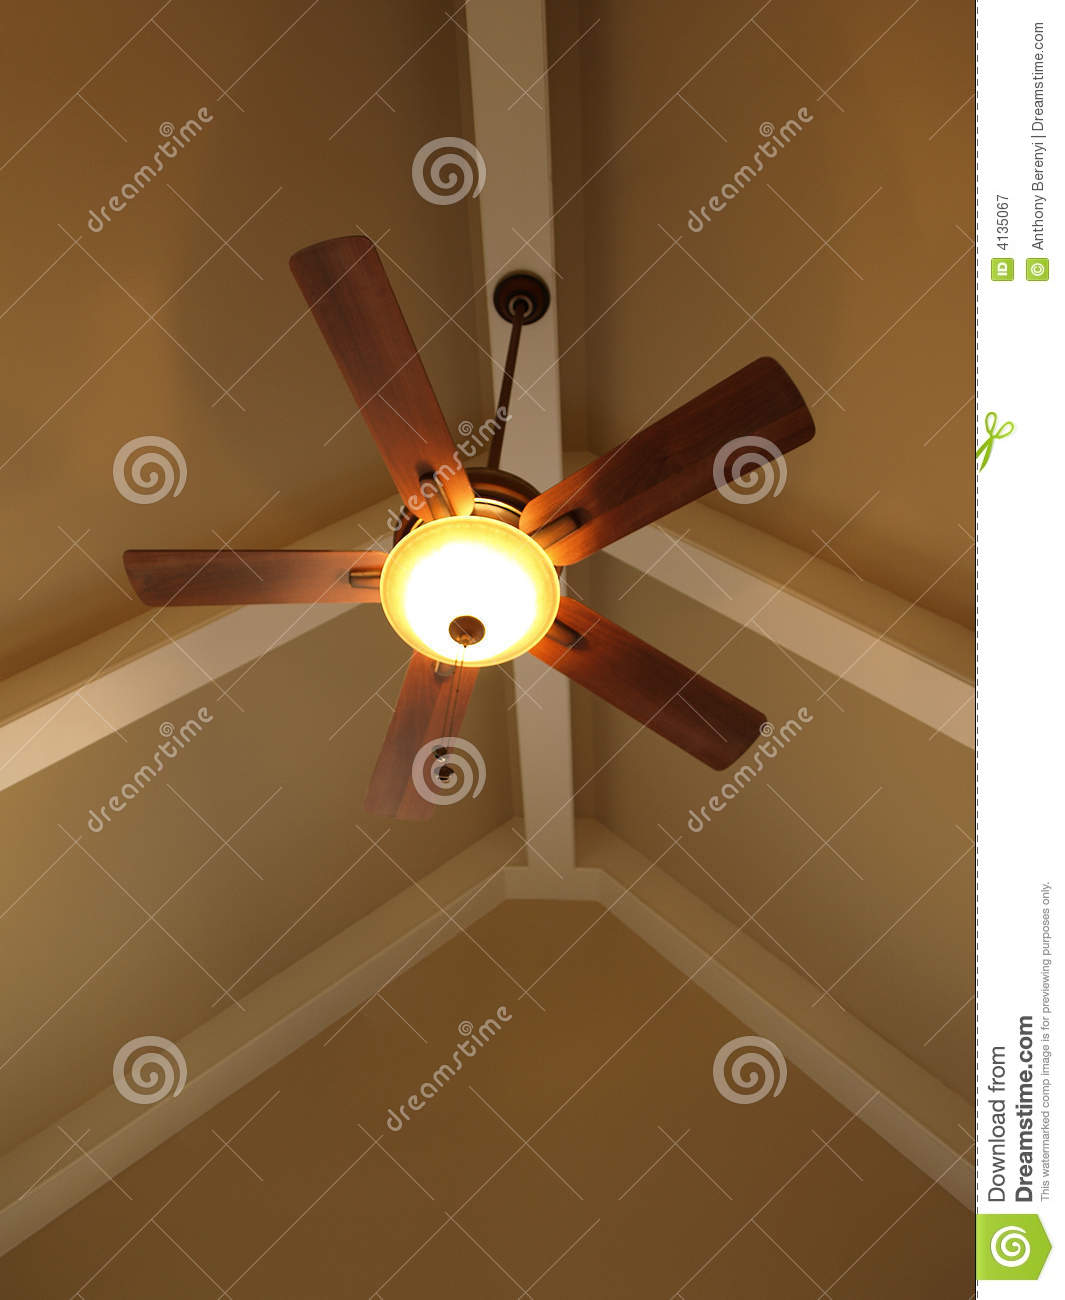 Ceiling Fan In Vaulted Ceiling Stock Image Image Of